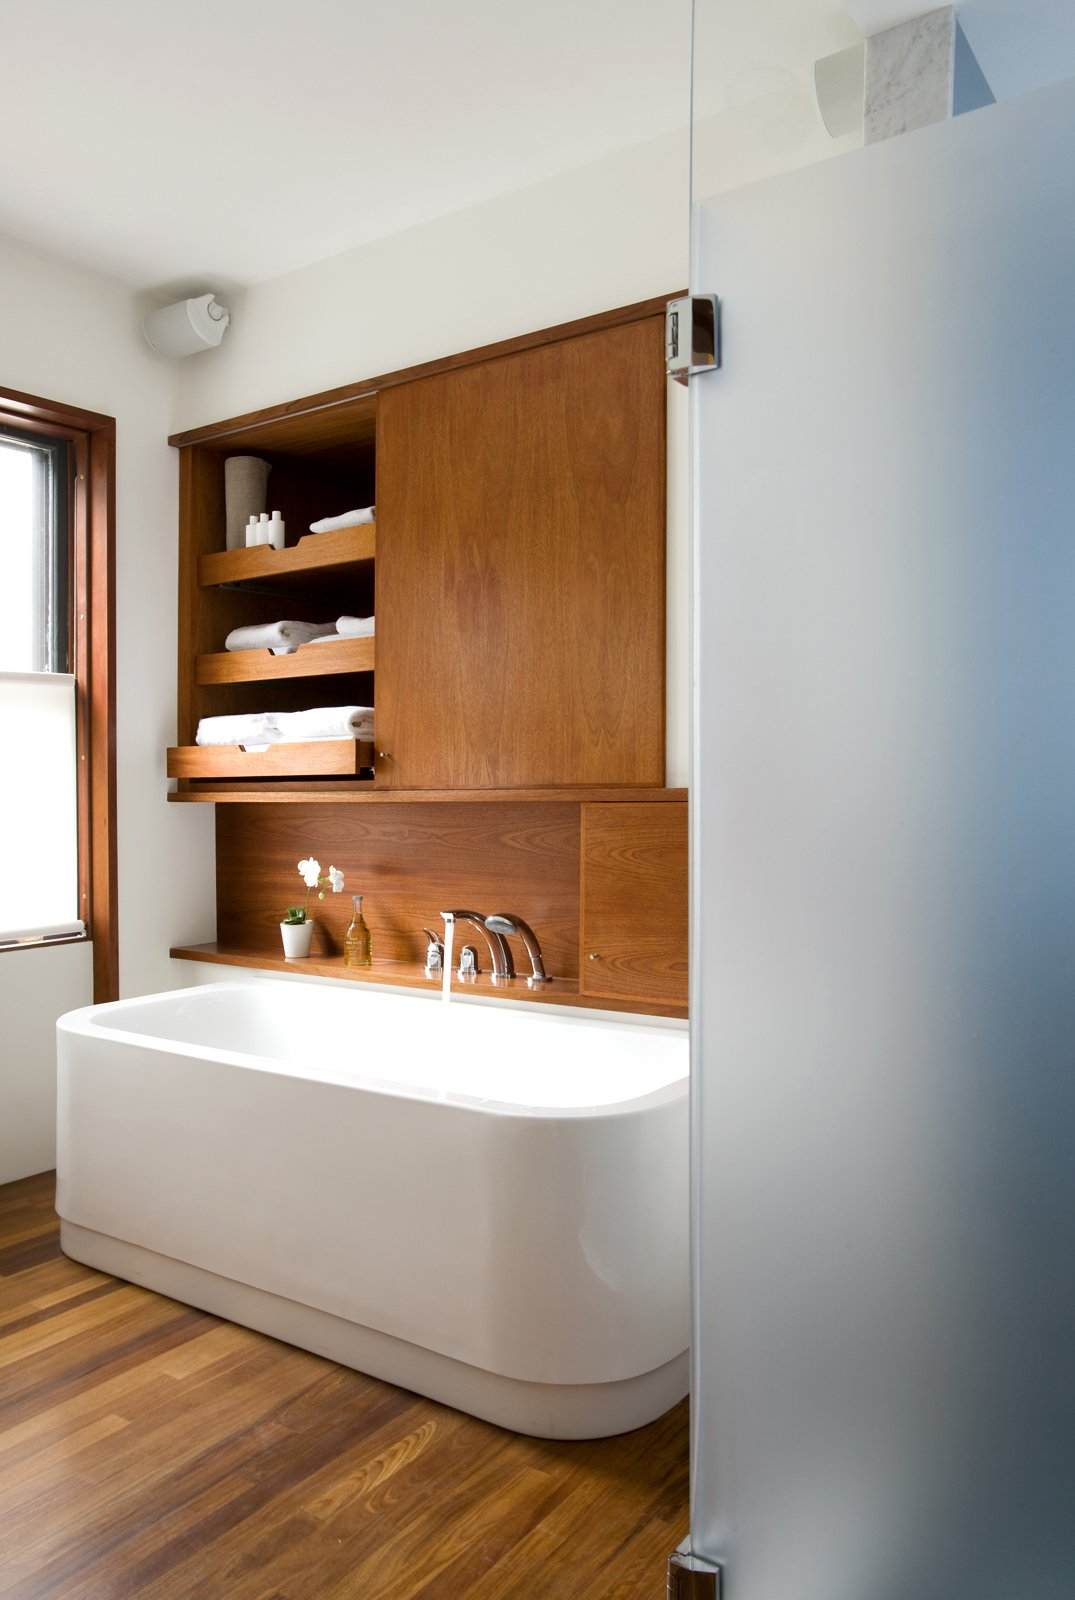 The leftmost cabinet above the Duravit bathtub (equipped with KWC fixtures) occupies the space where a doorway once lead into the living room, creating unnecessary traffic from the home's public spaces through to the master bedroom. The new bathroom features a minimal palette of white and teak.